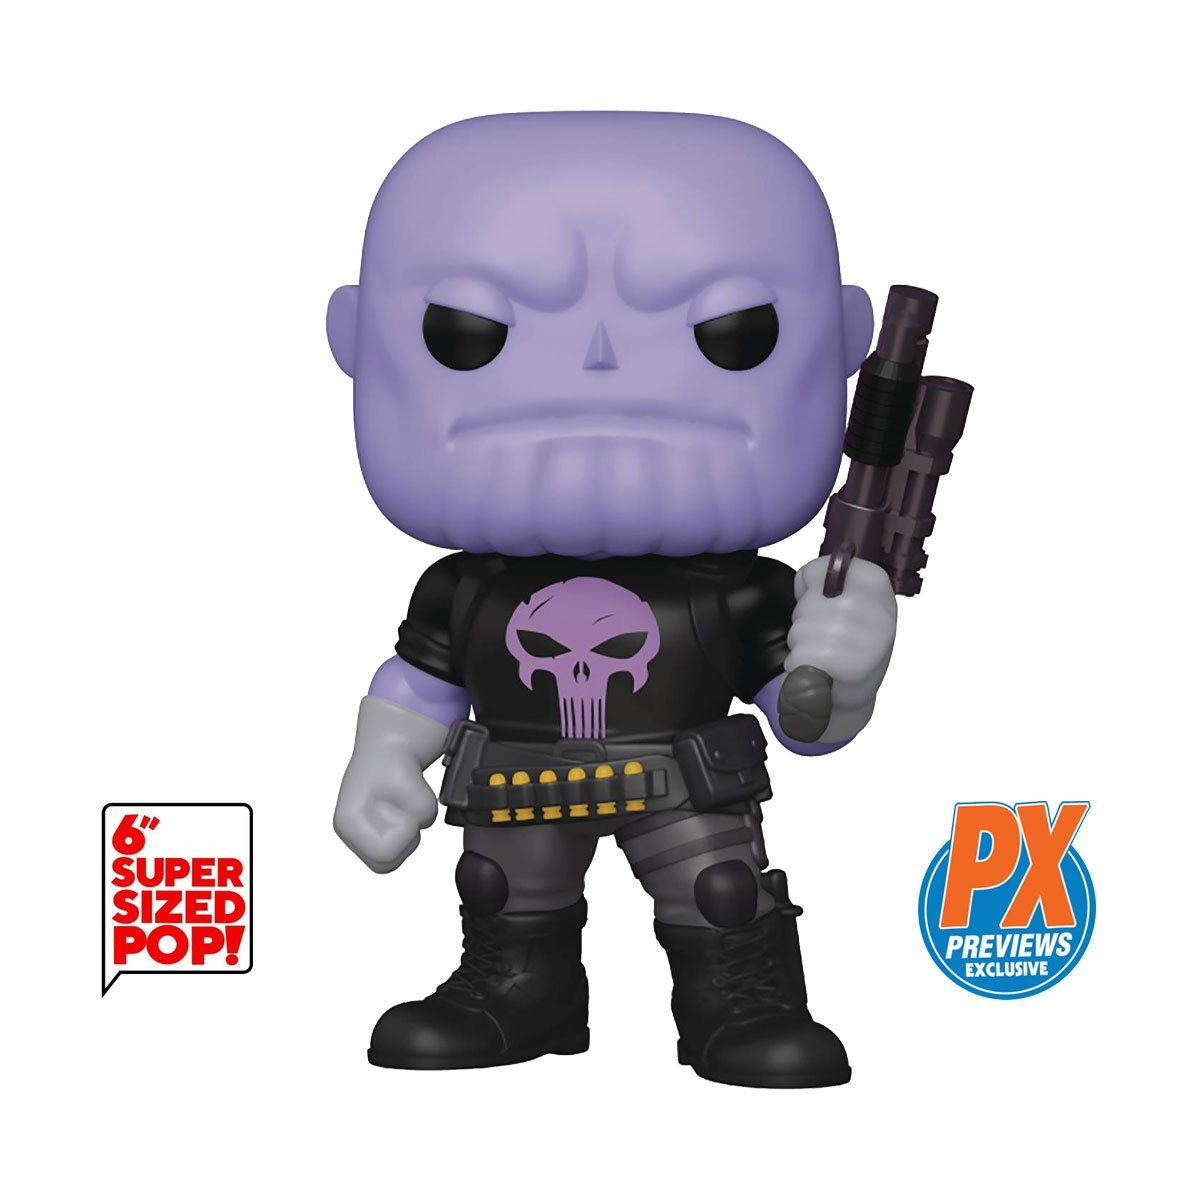 "Thanos as Punisher Earth 18138 6"" Super-Sized PX Exclusive Funko Pop! Marvel [PRE-ORDER] Pop! Funko"